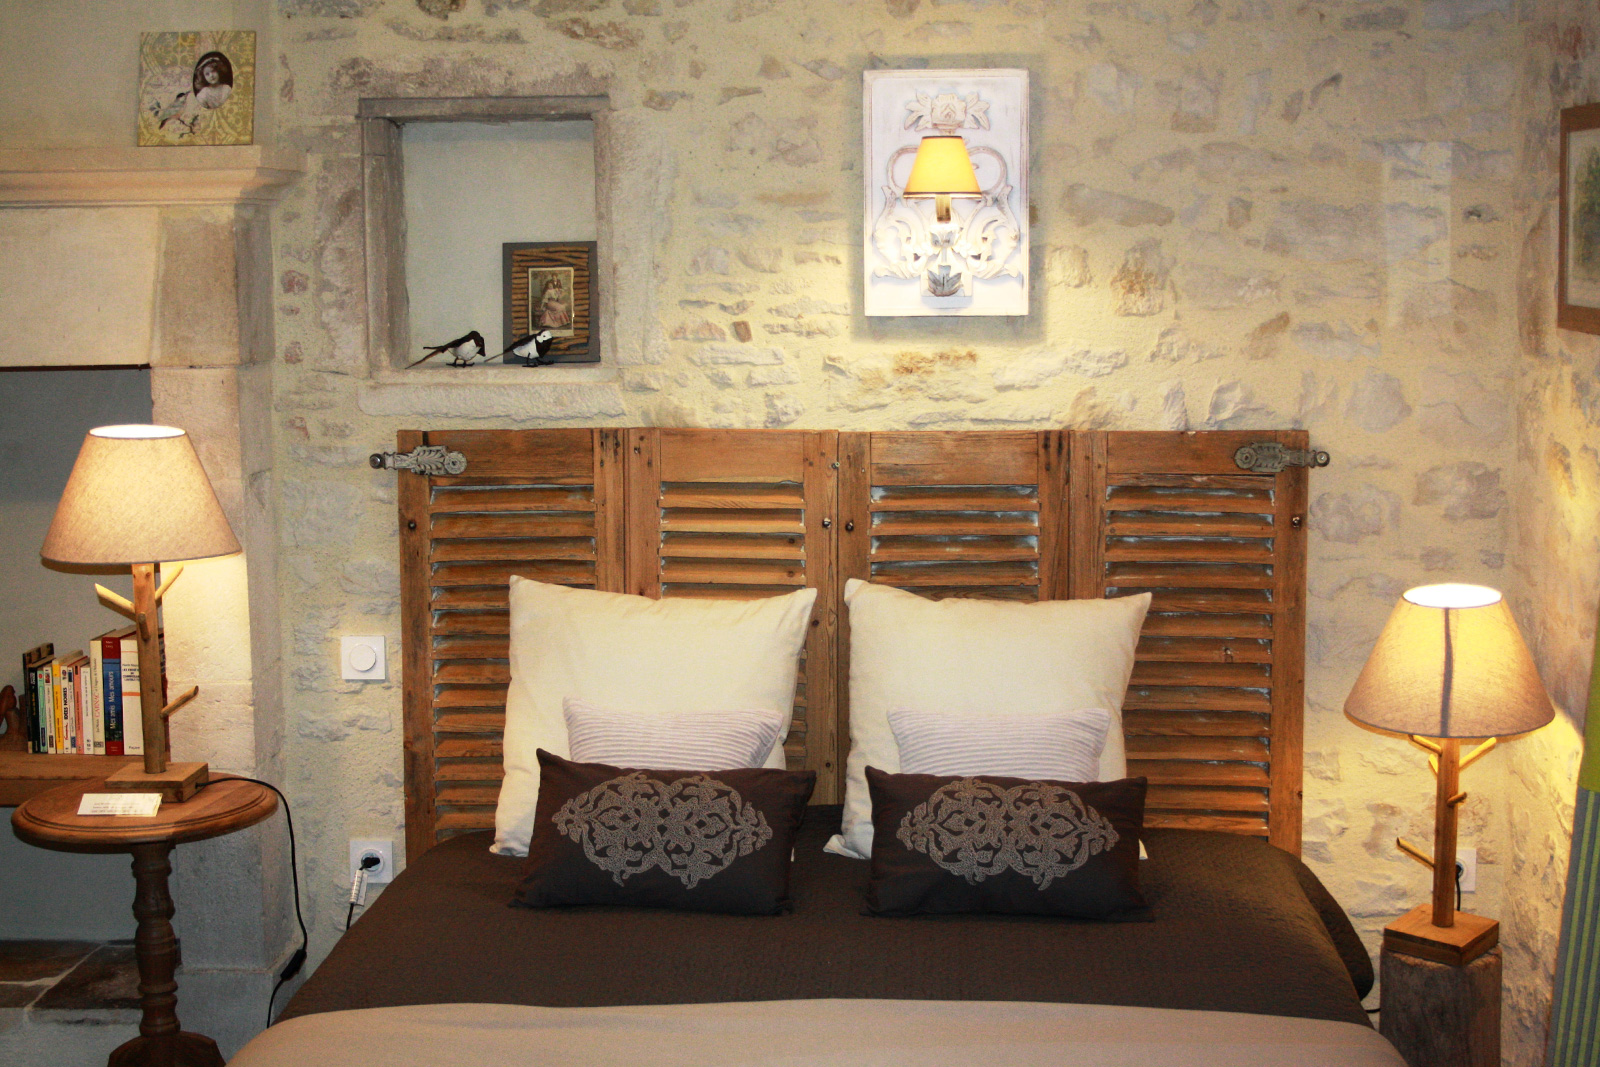 Cr ation de chambres d 39 h tes et accre chambres hotes en france for Chambre dhotes luxe normandie